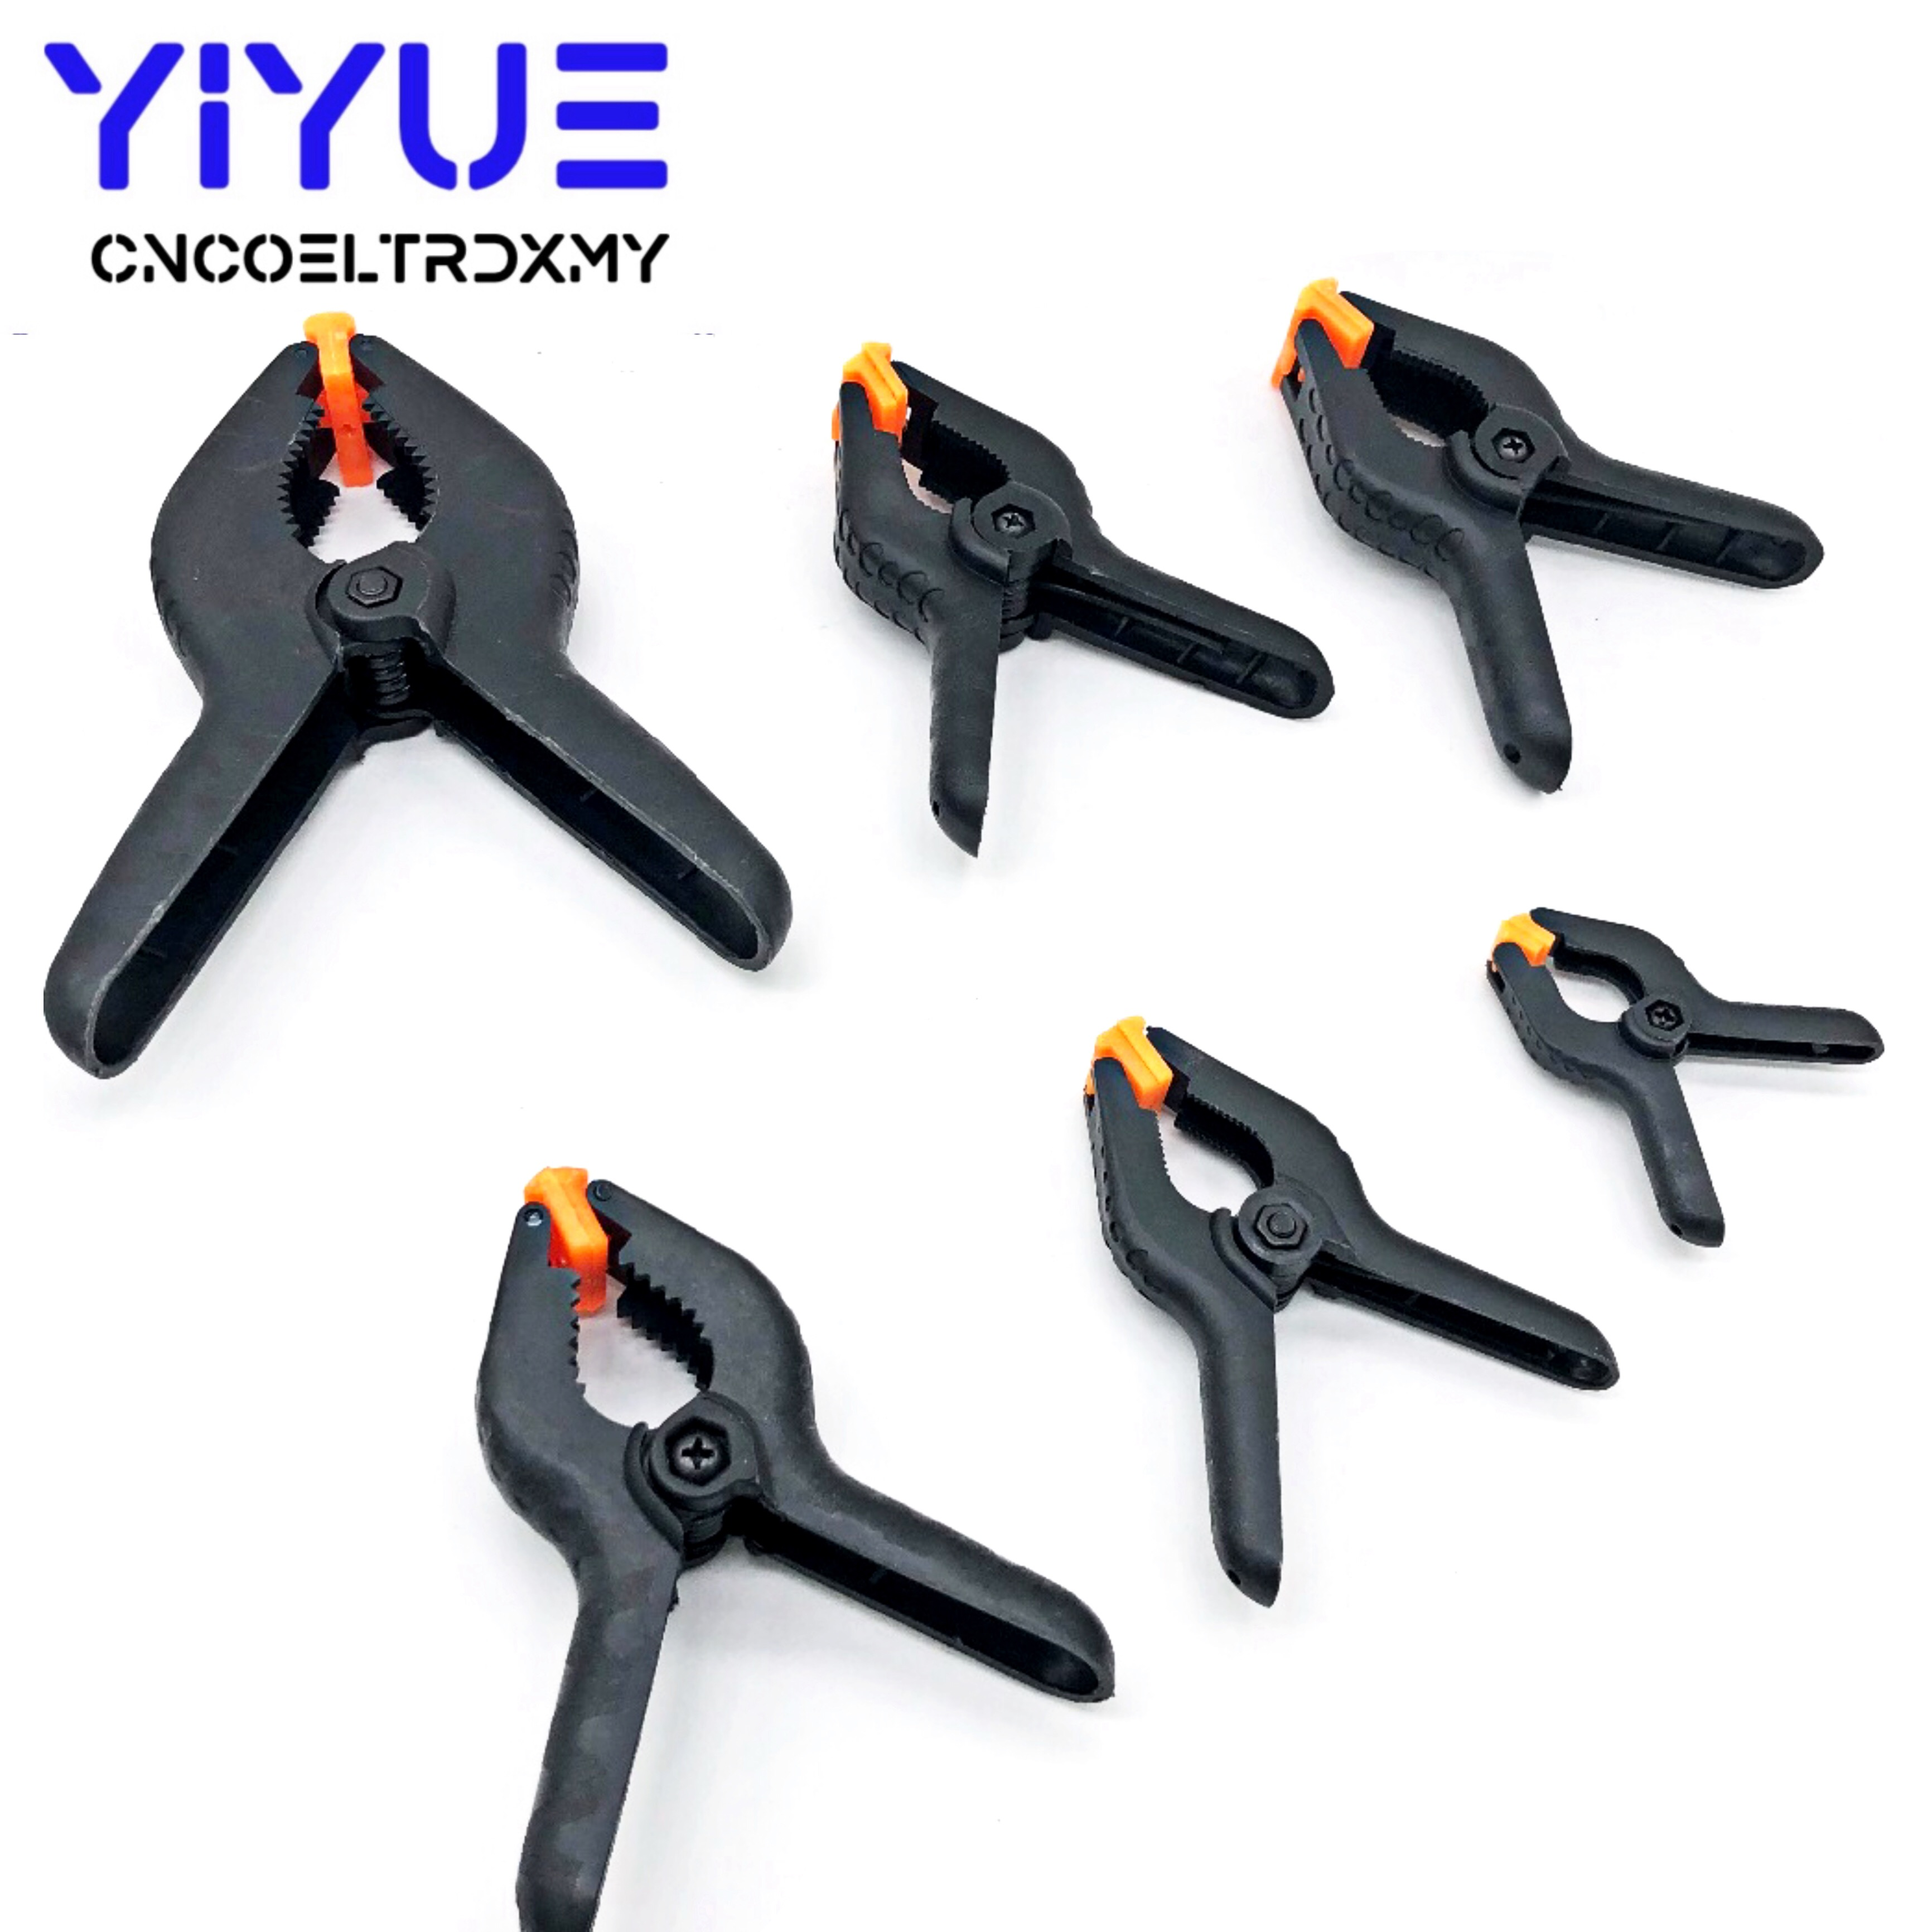 9 inch New 3 Sizes 9 Strong High Quality A Type Multifunctional Plastic Clips Spring Clip Clamps for DIY Woodworking Tools Black